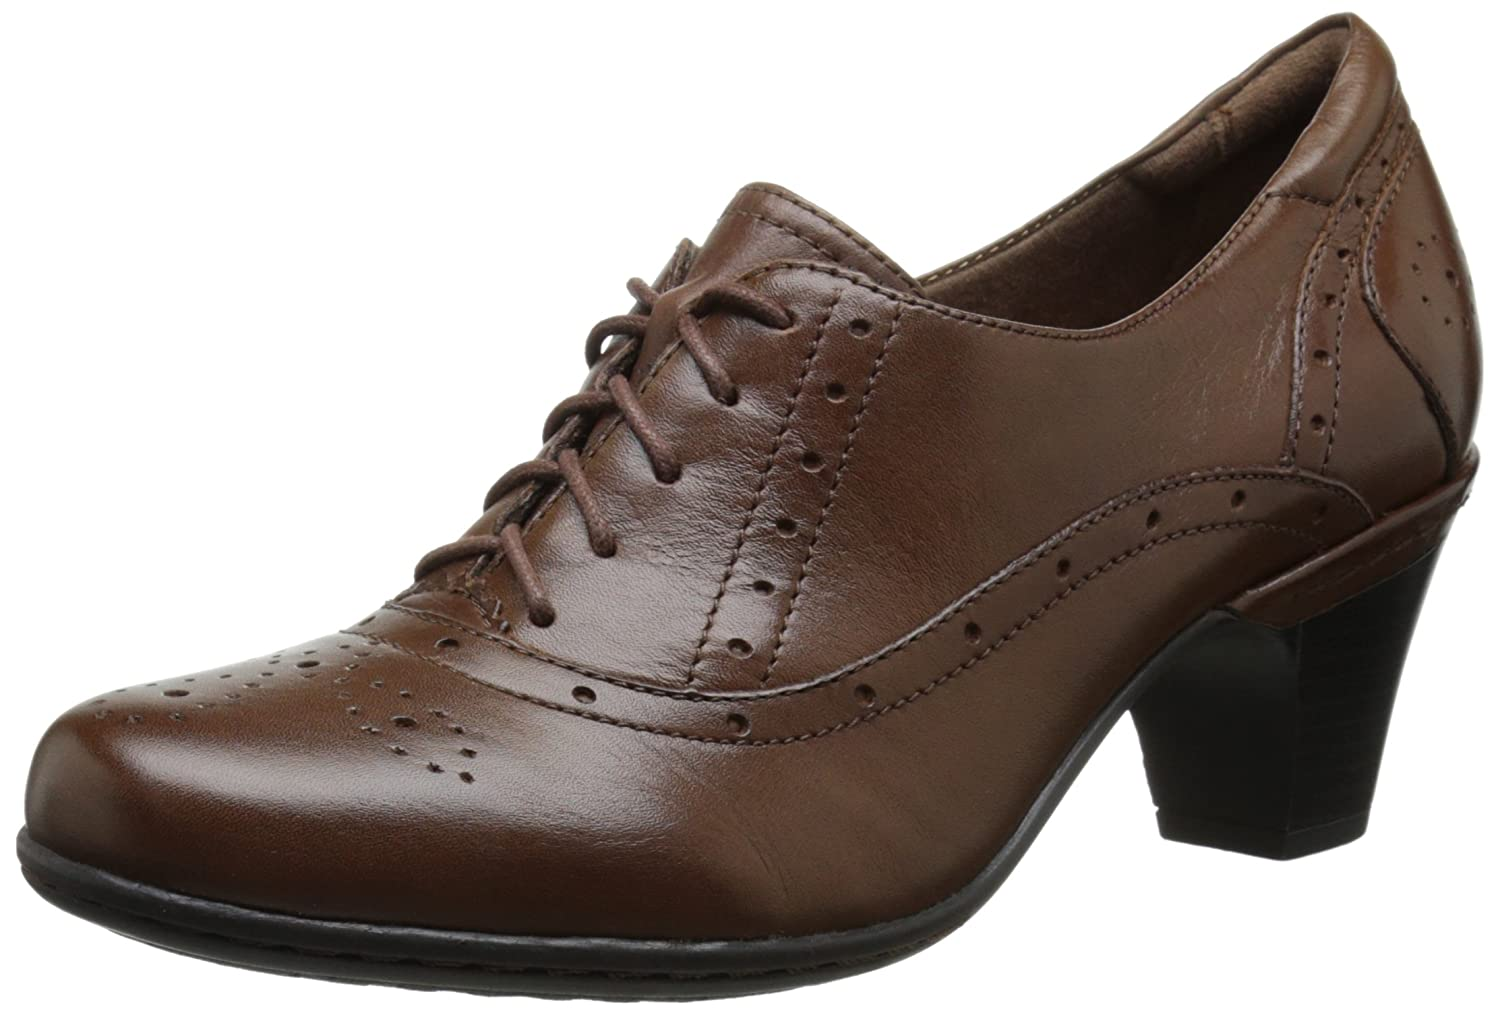 Cobb Hill Rockport Women's Shayla Dress Pump B00SK4AJBS 11 W US|Brown